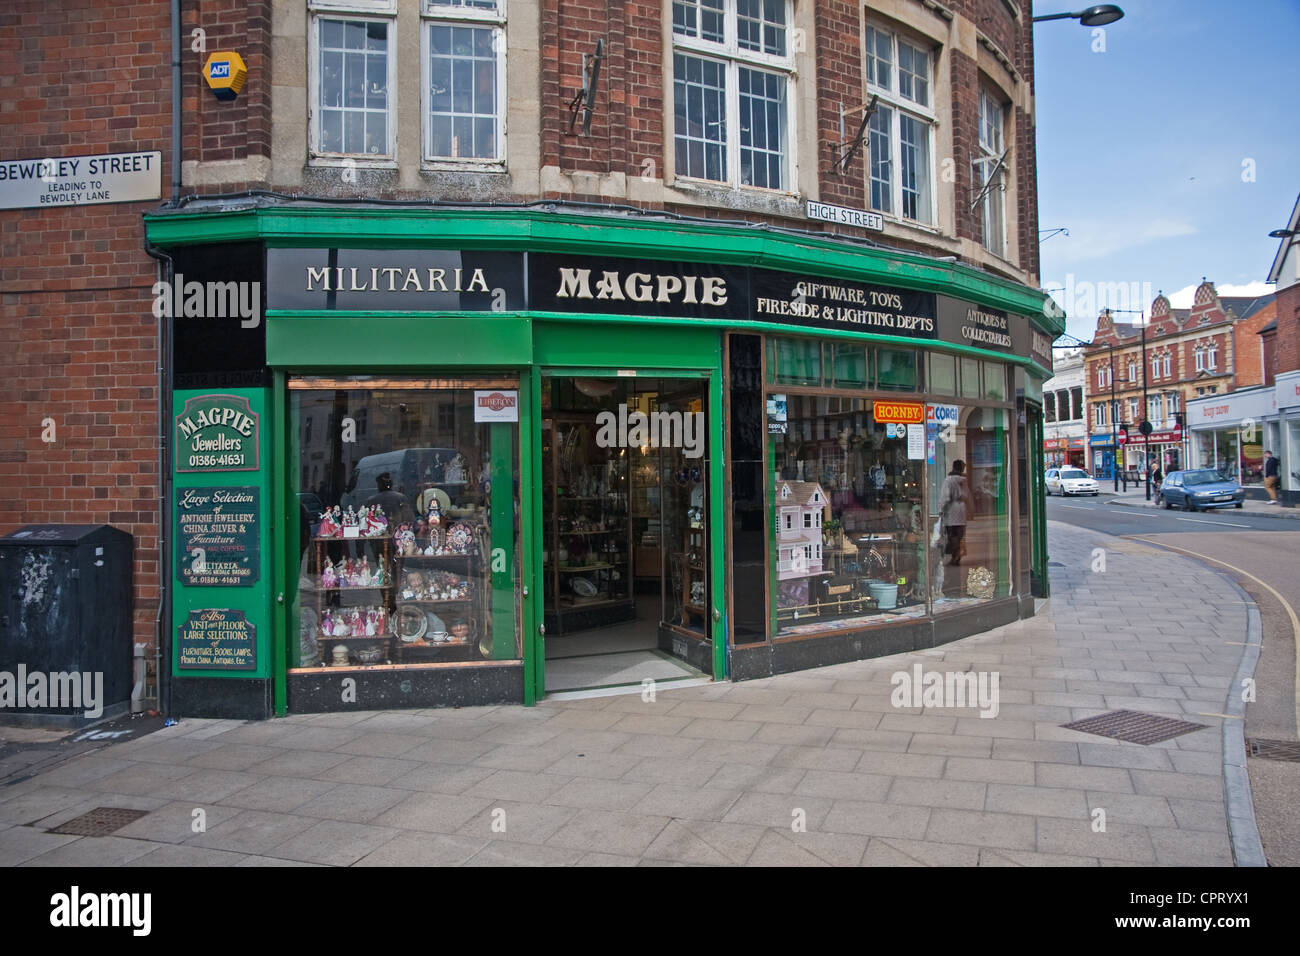 Magpie Jewellers, a shop dealing in antiques and militaria, Evesham, Worcestershire - Stock Image